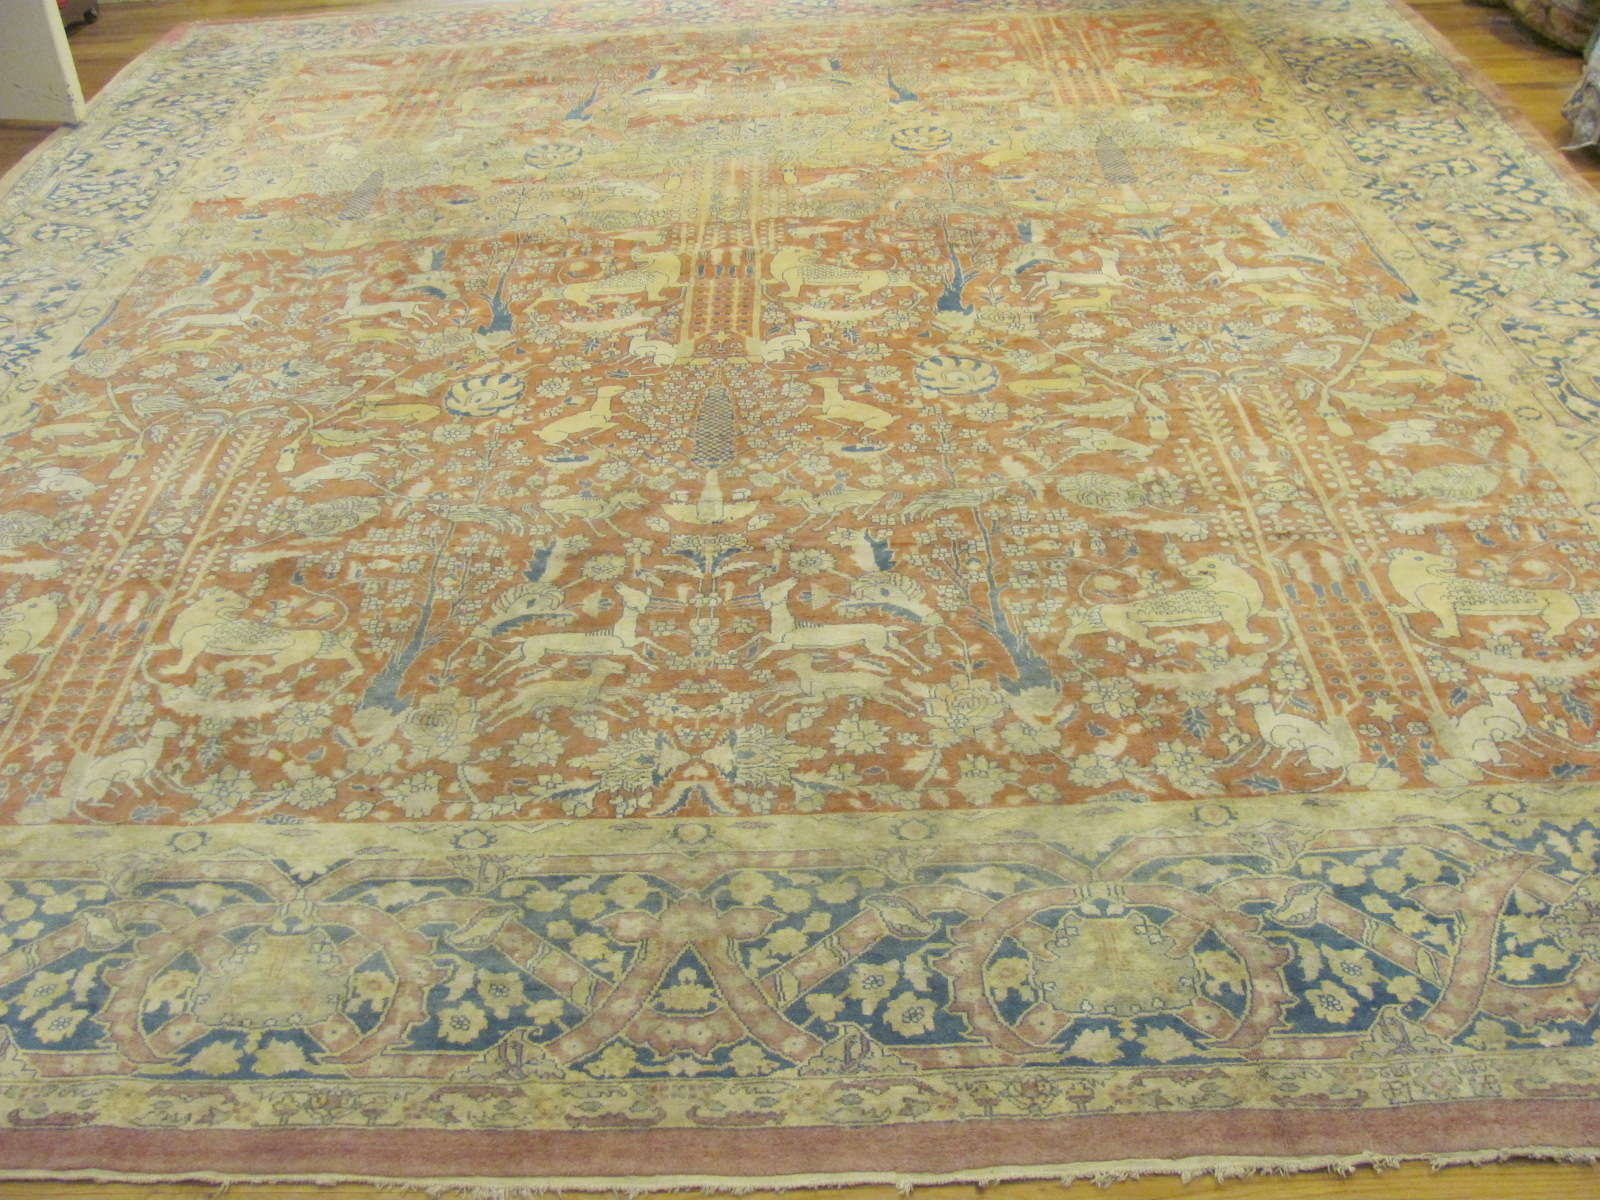 Antique India Agra Carpet | Circa 1900